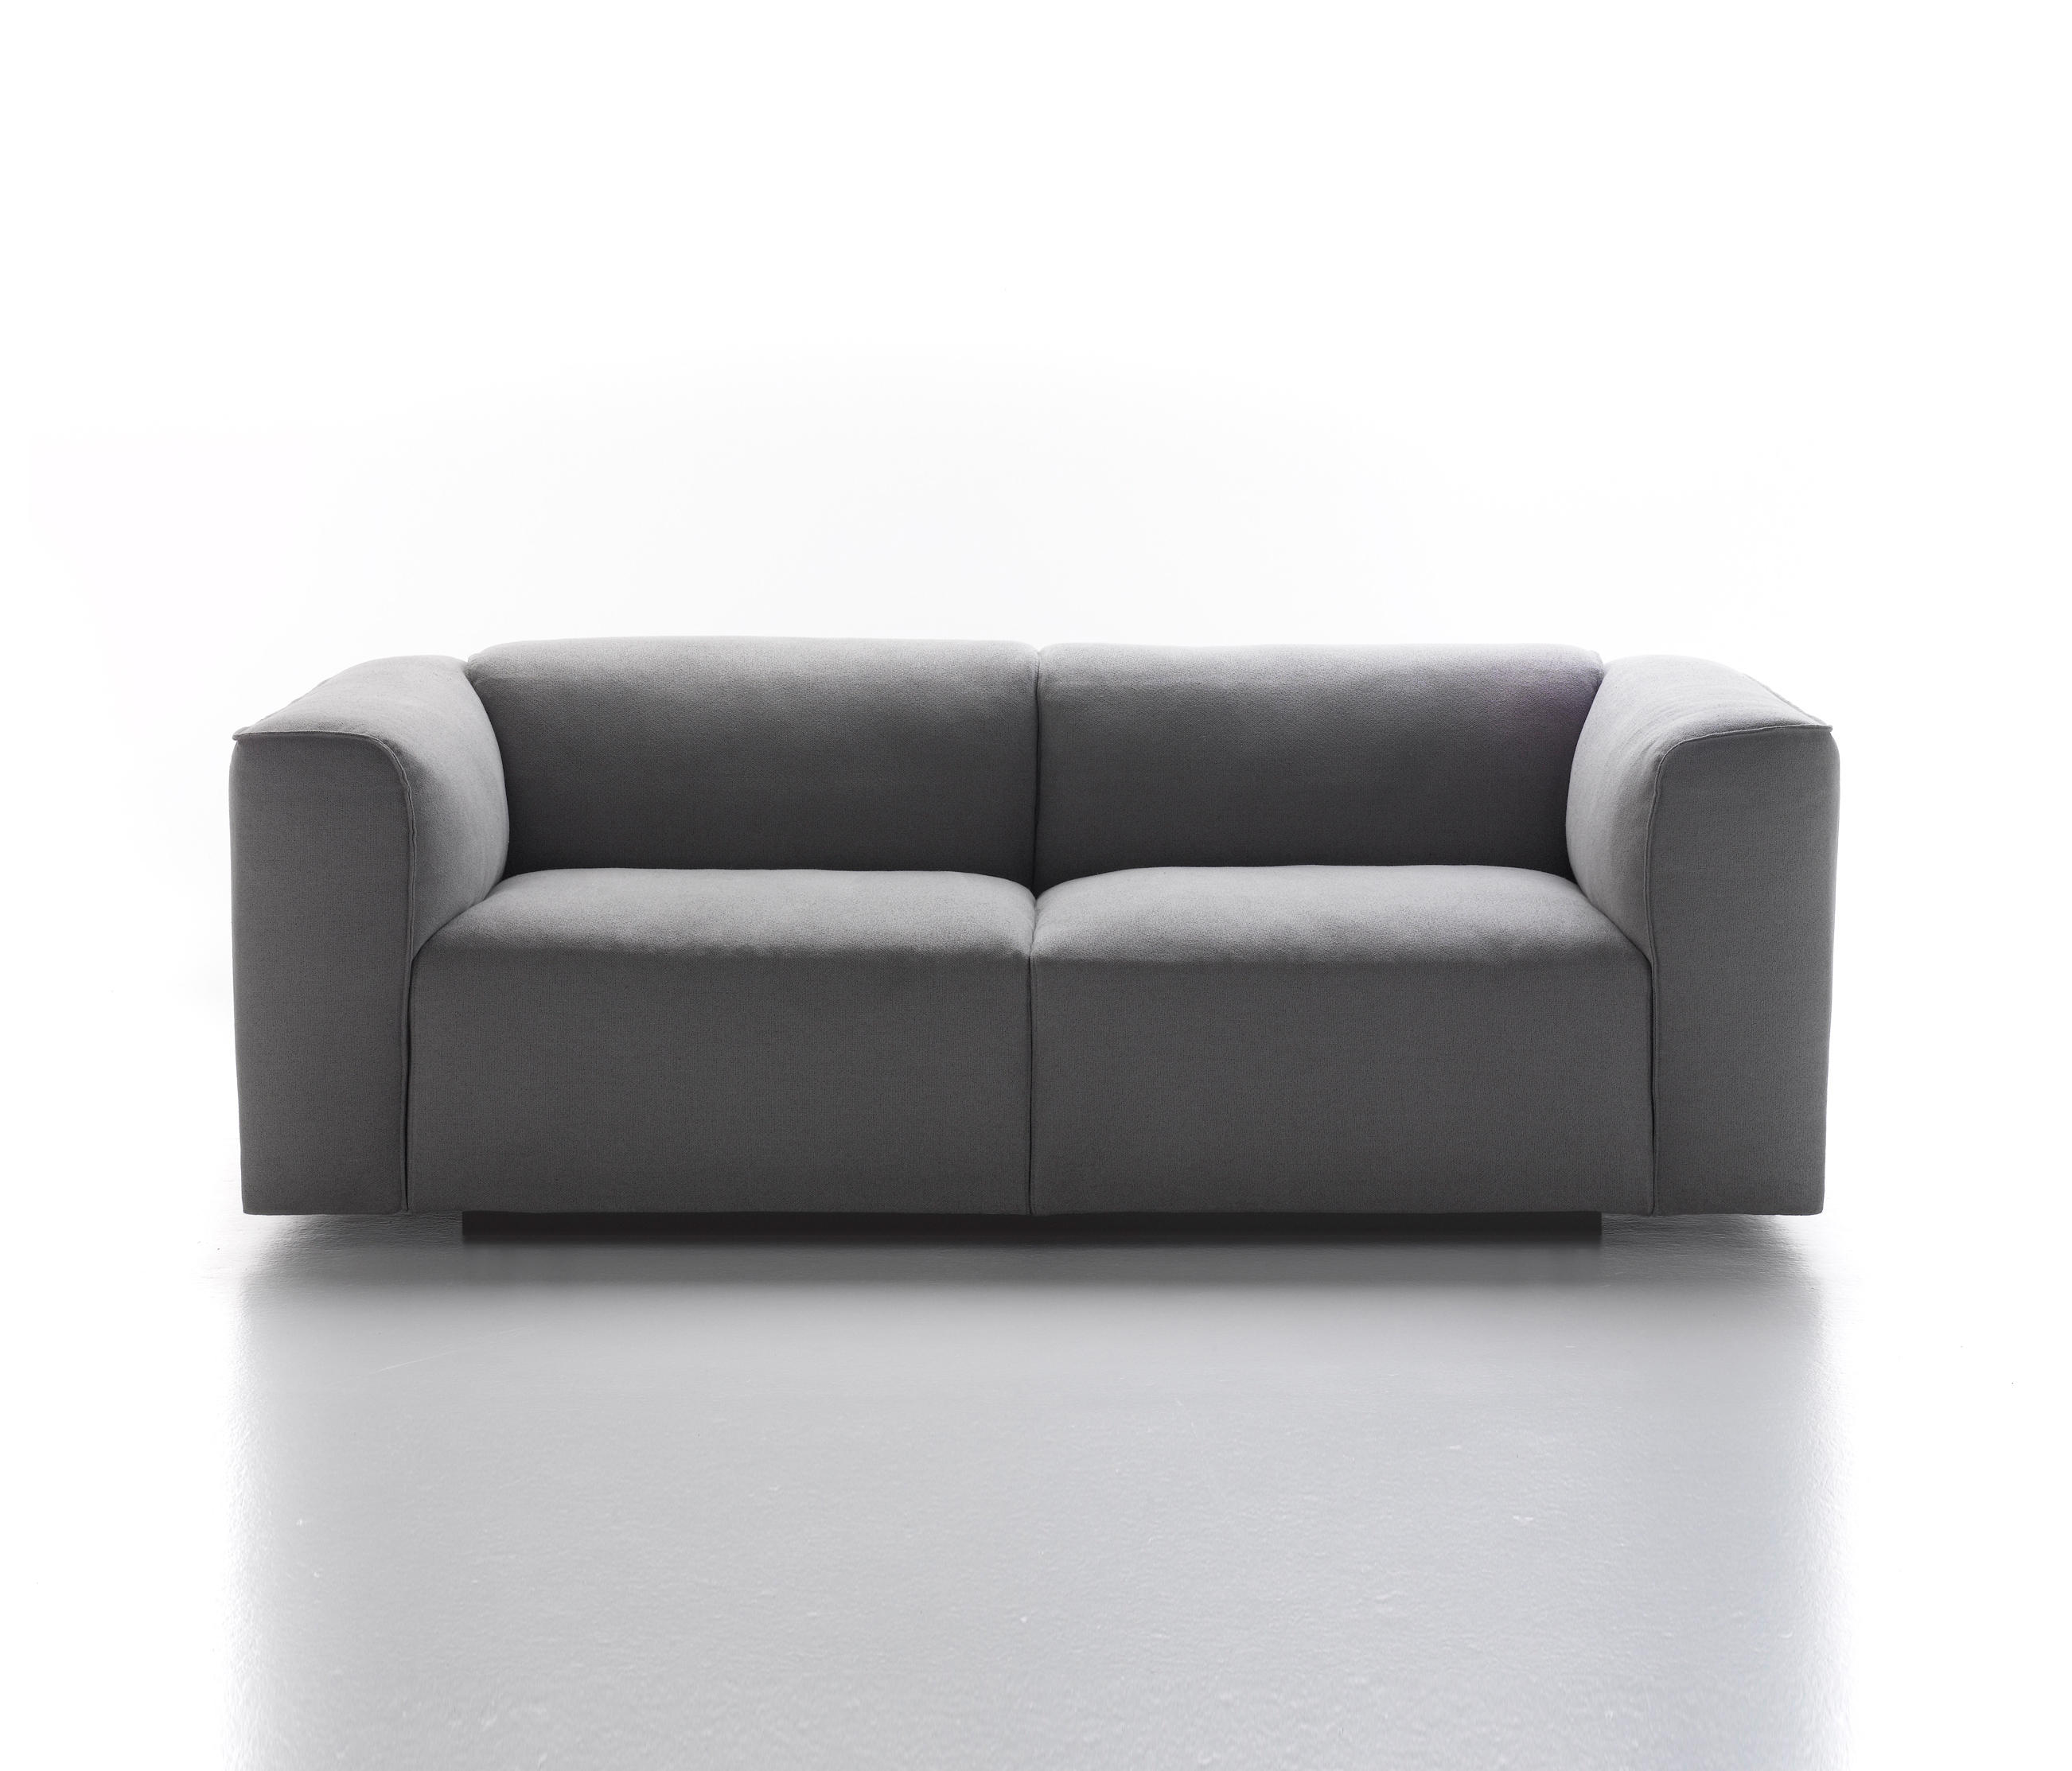 MATE 2012 - Lounge sofas from MDF Italia | Architonic